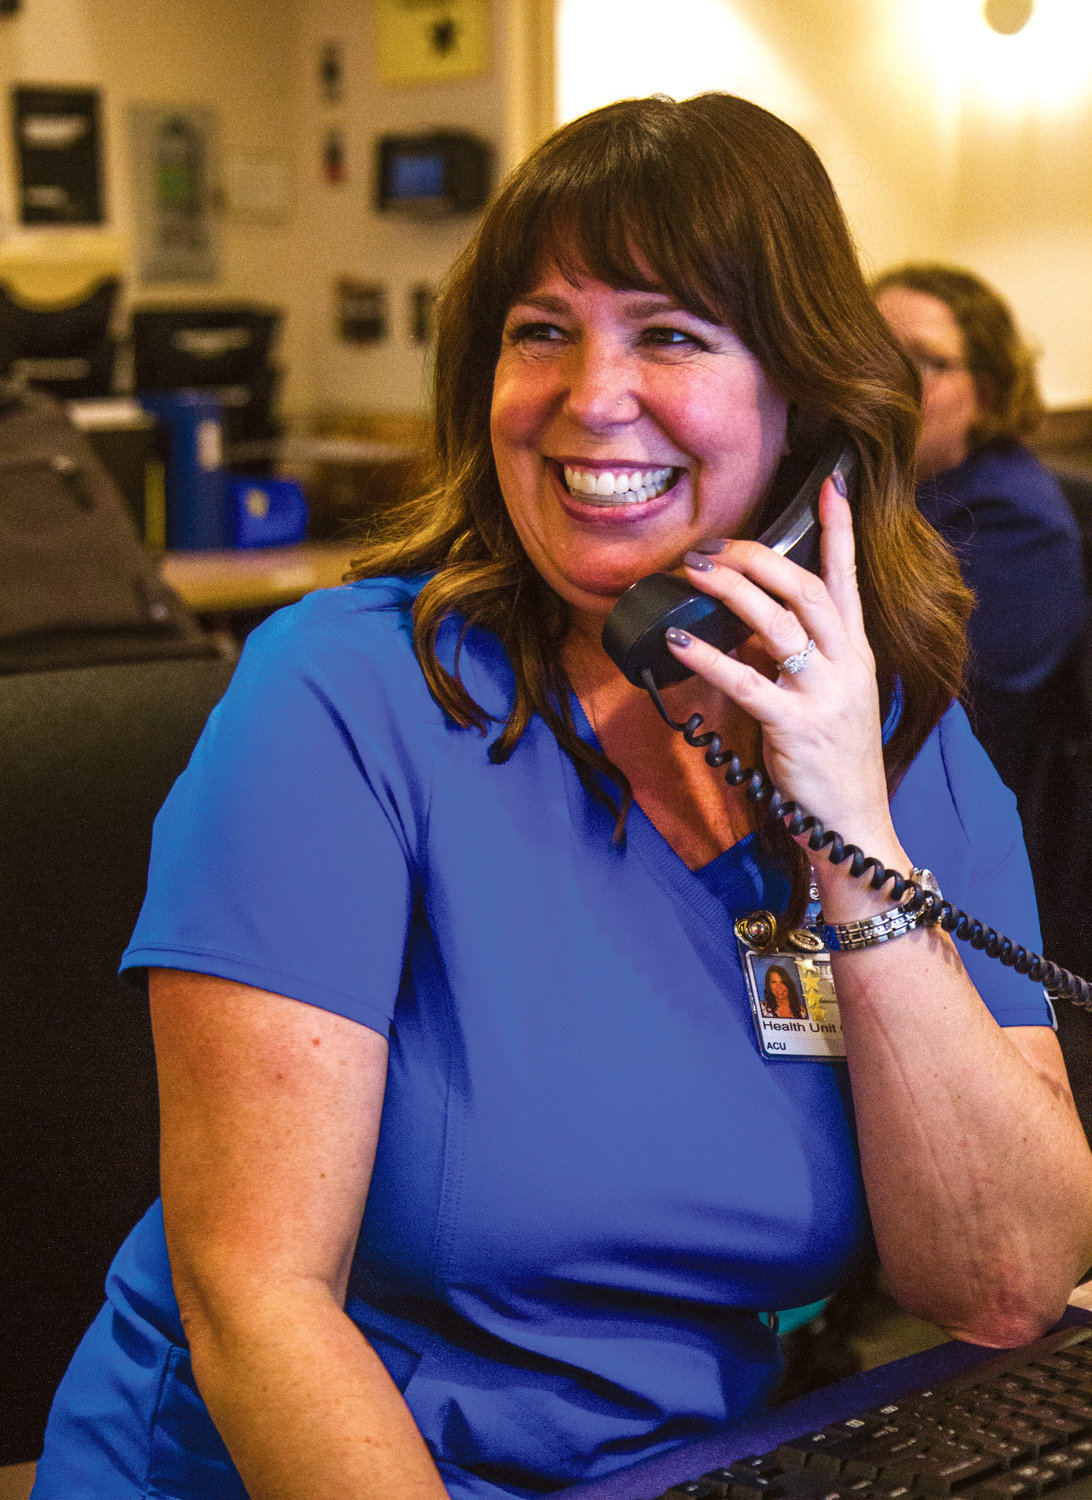 Corinna Clemens, Jefferson Healthcare health unit coordinator for the acute and intensive care units, takes a phone call at her station.